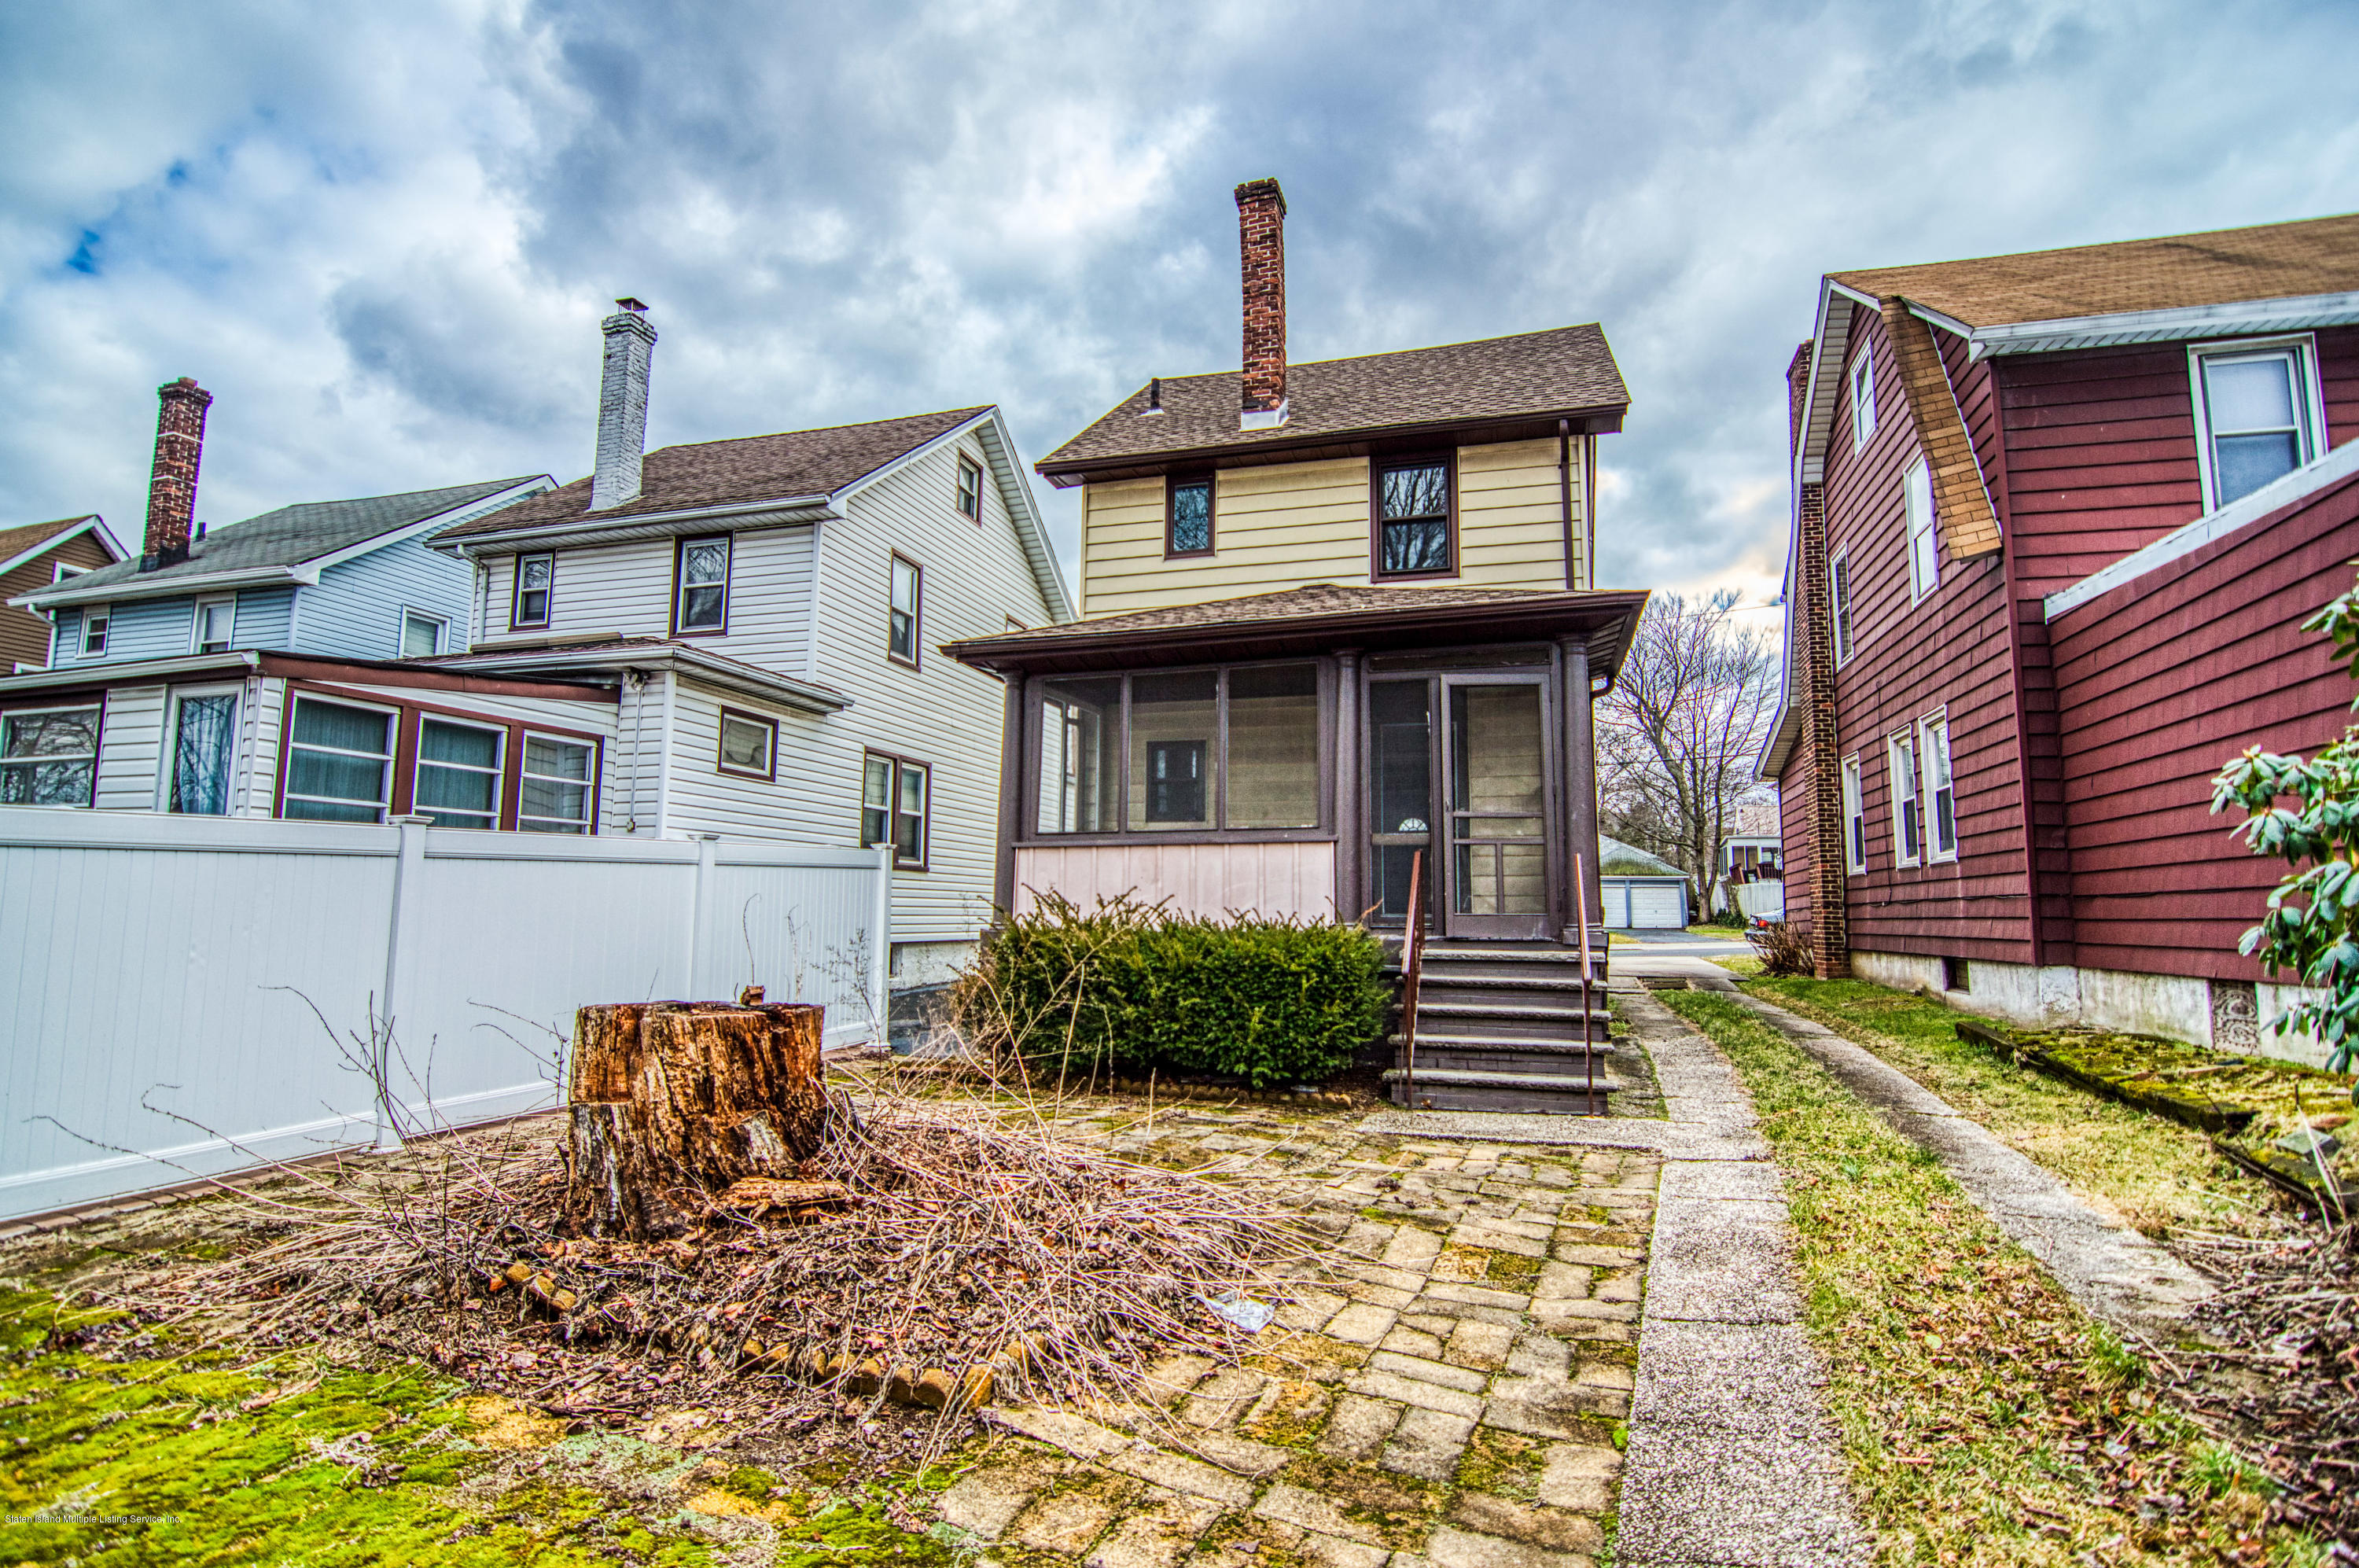 Single Family - Detached 54 Quinlan Avenue  Staten Island, NY 10314, MLS-1135997-20